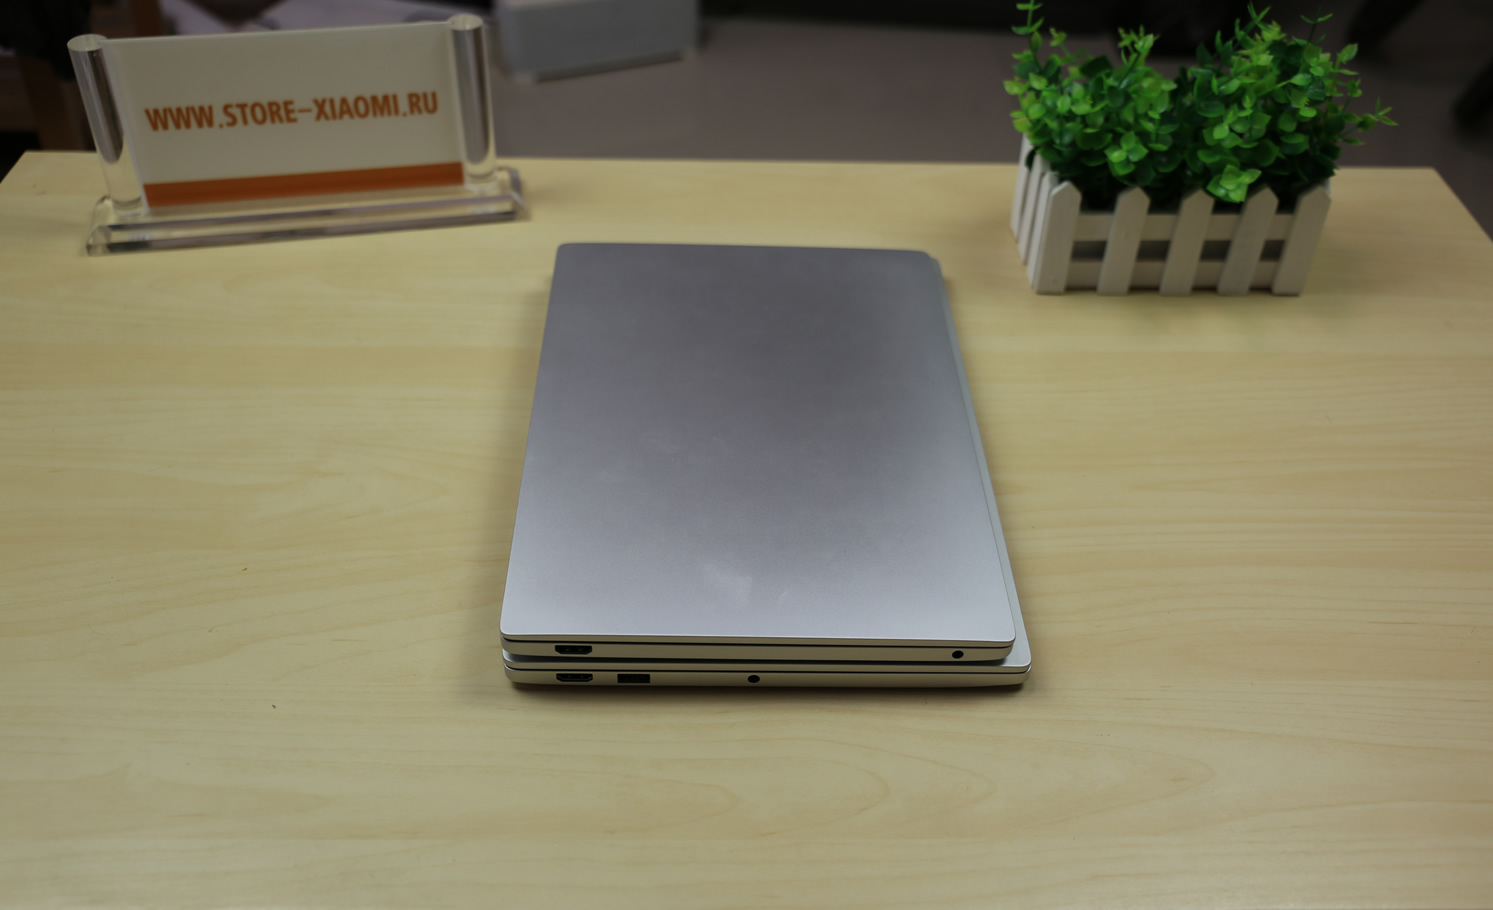 xiaomi-notebook-sravnen-3